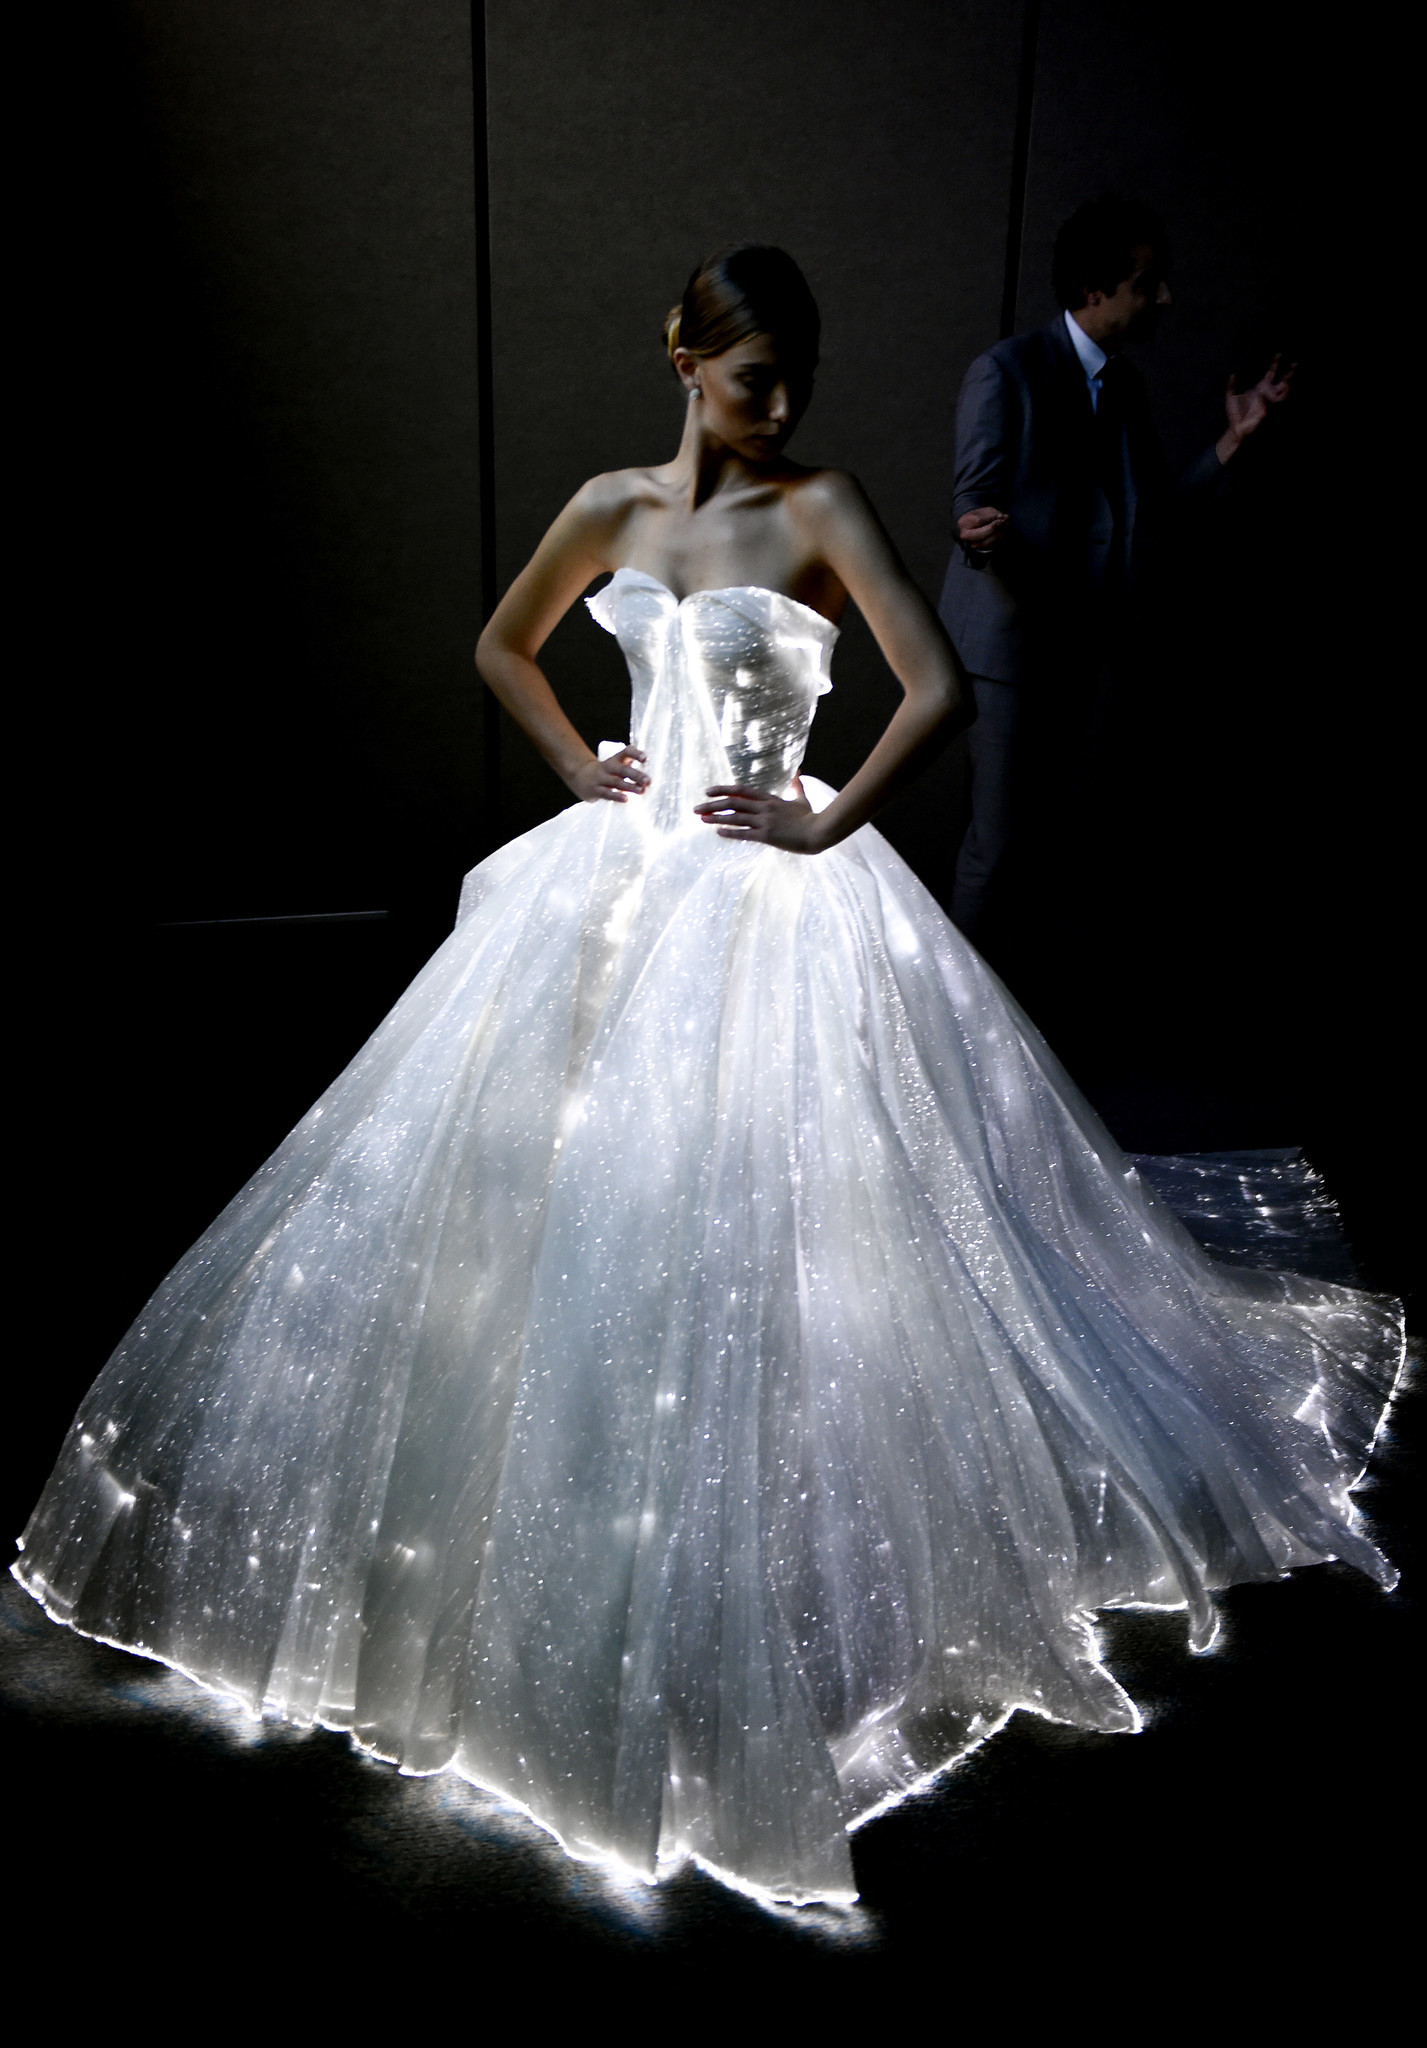 IMAGE DISTRIBUTED FOR ADOBE - Fashion designer Zac Posen talks with the press while showing off his light-up, fiber optic dress at Adobe MAX, The Creativity Conference, on Thursday, Nov. 3 , 2016 in San Diego. (Denis Poroy/AP Images for Adobe)